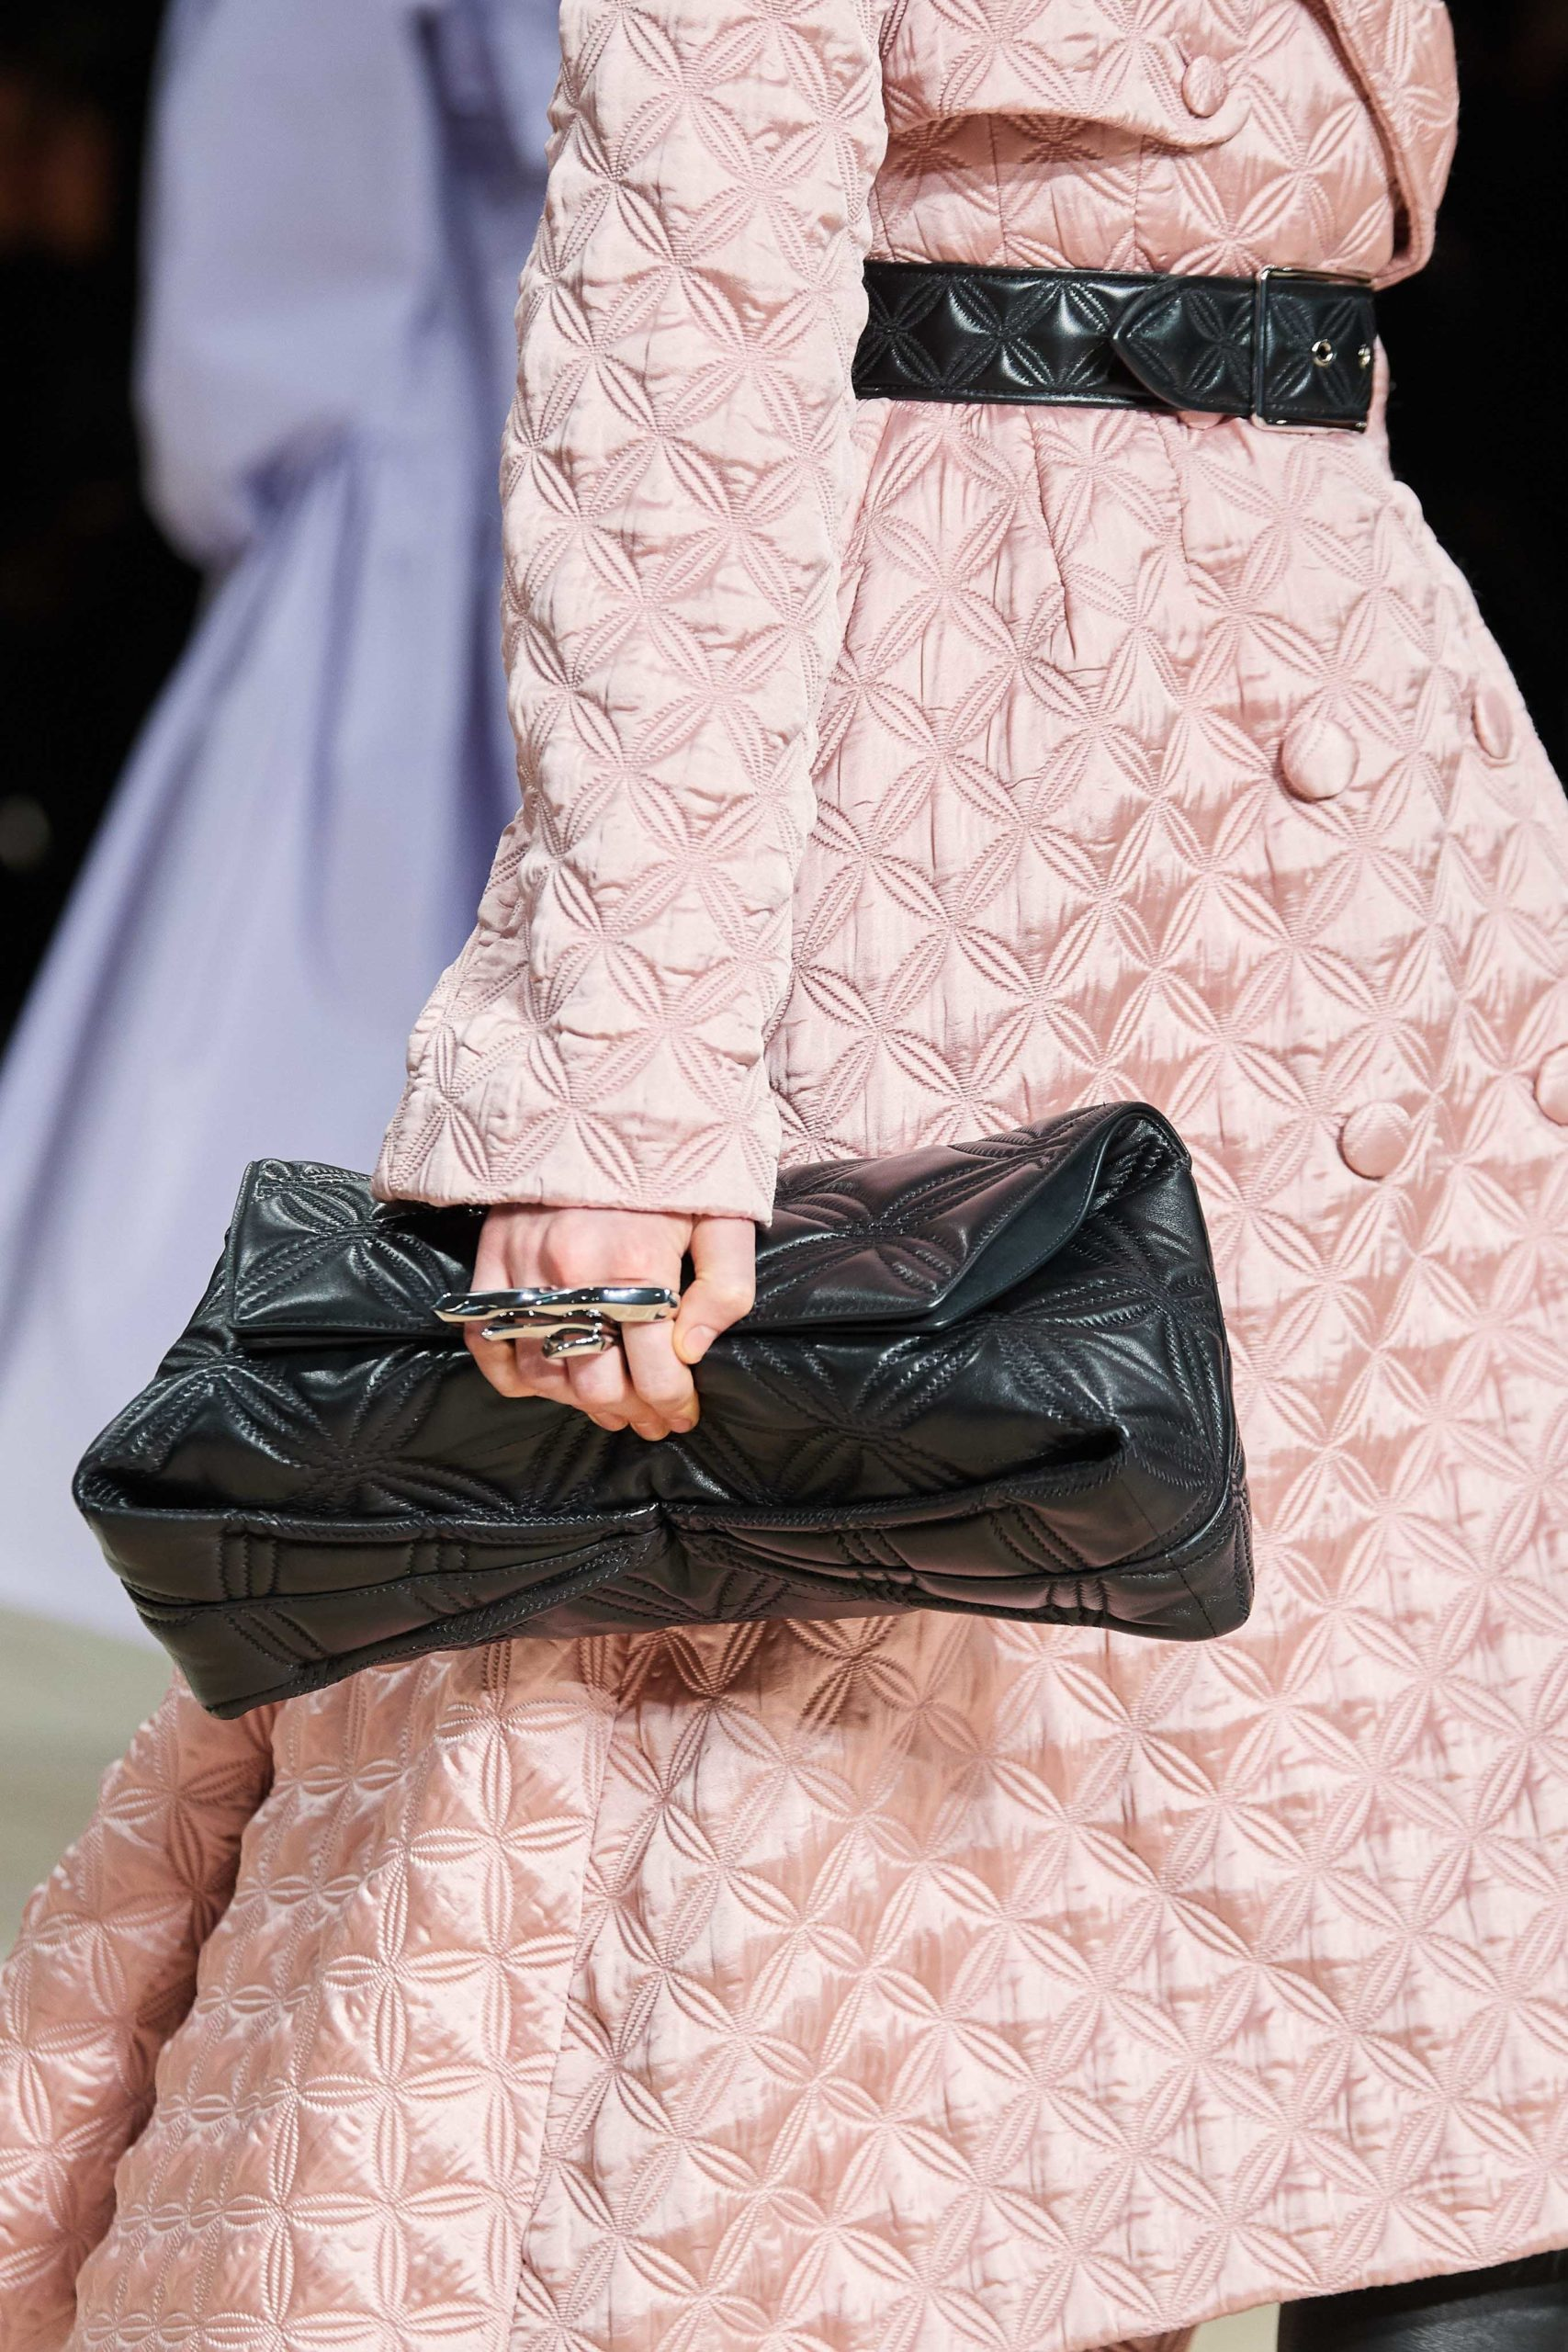 Alexander McQueen Fall 2020 trends runway coverage Ready To Wear Vogue details big clutch trend bag